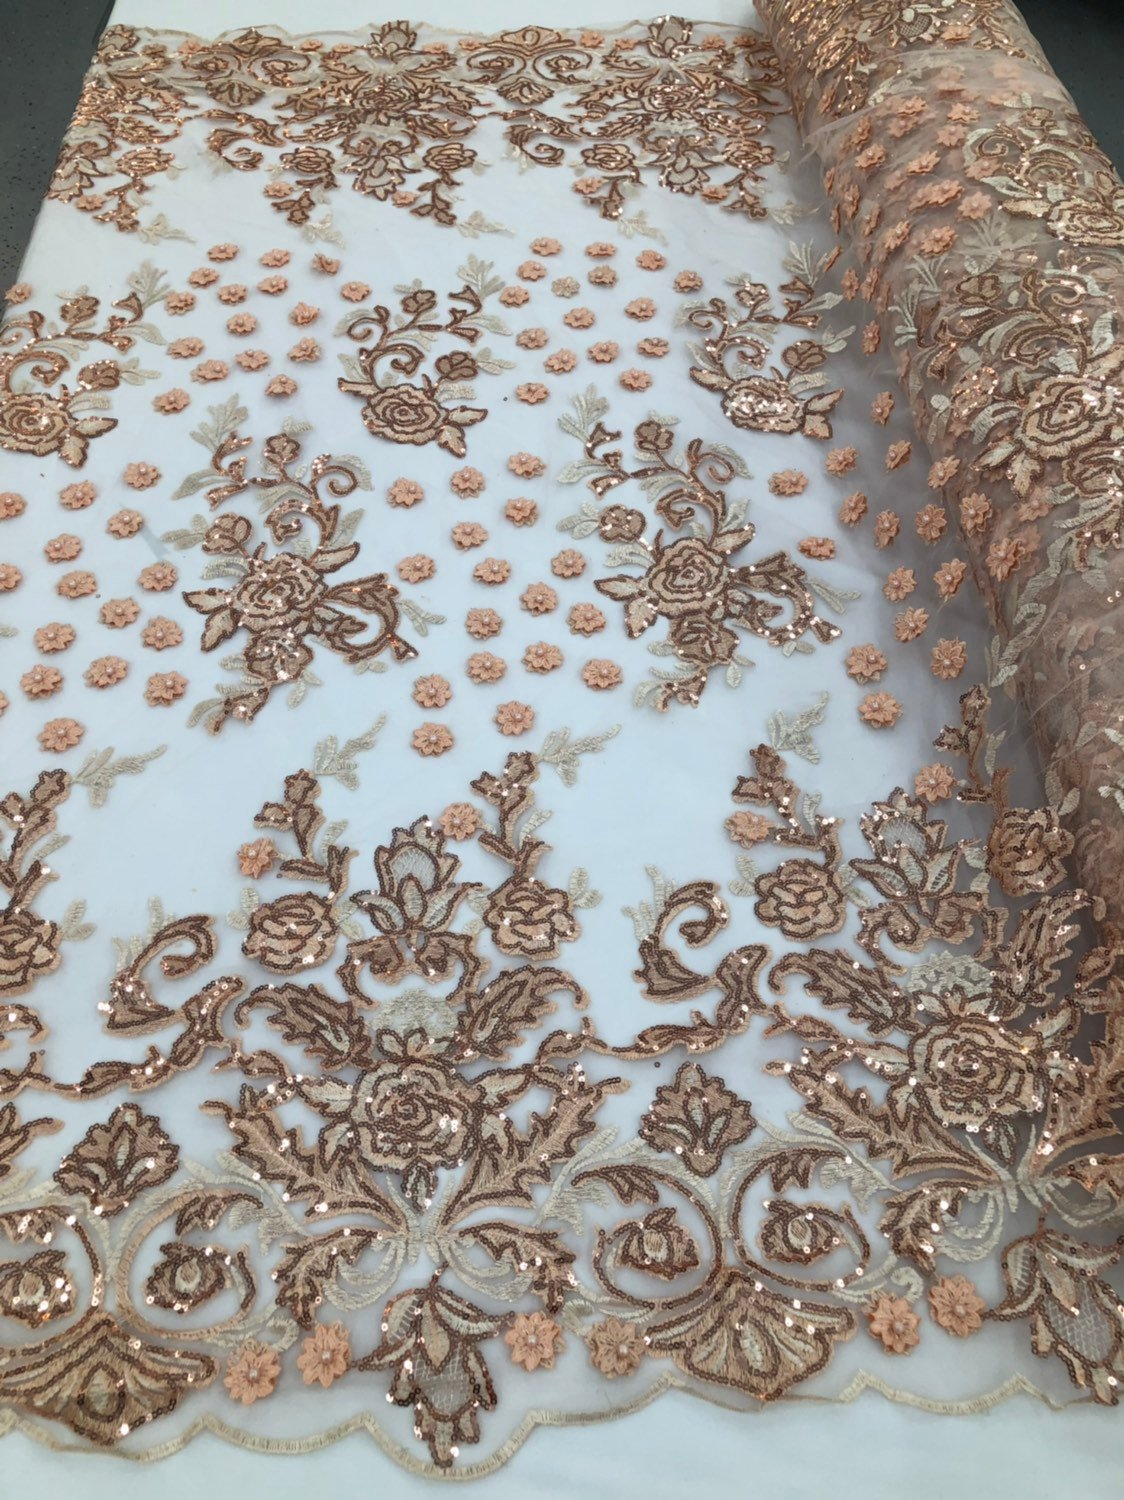 BLUSH PEACH Lace Fabric - Mini 3D Flower Embroidered On A Mesh Sequins And Beaded Fabric Floral Wedding Bridal Veil Prom-Gown By The Yard - KINGDOM OF FABRICS